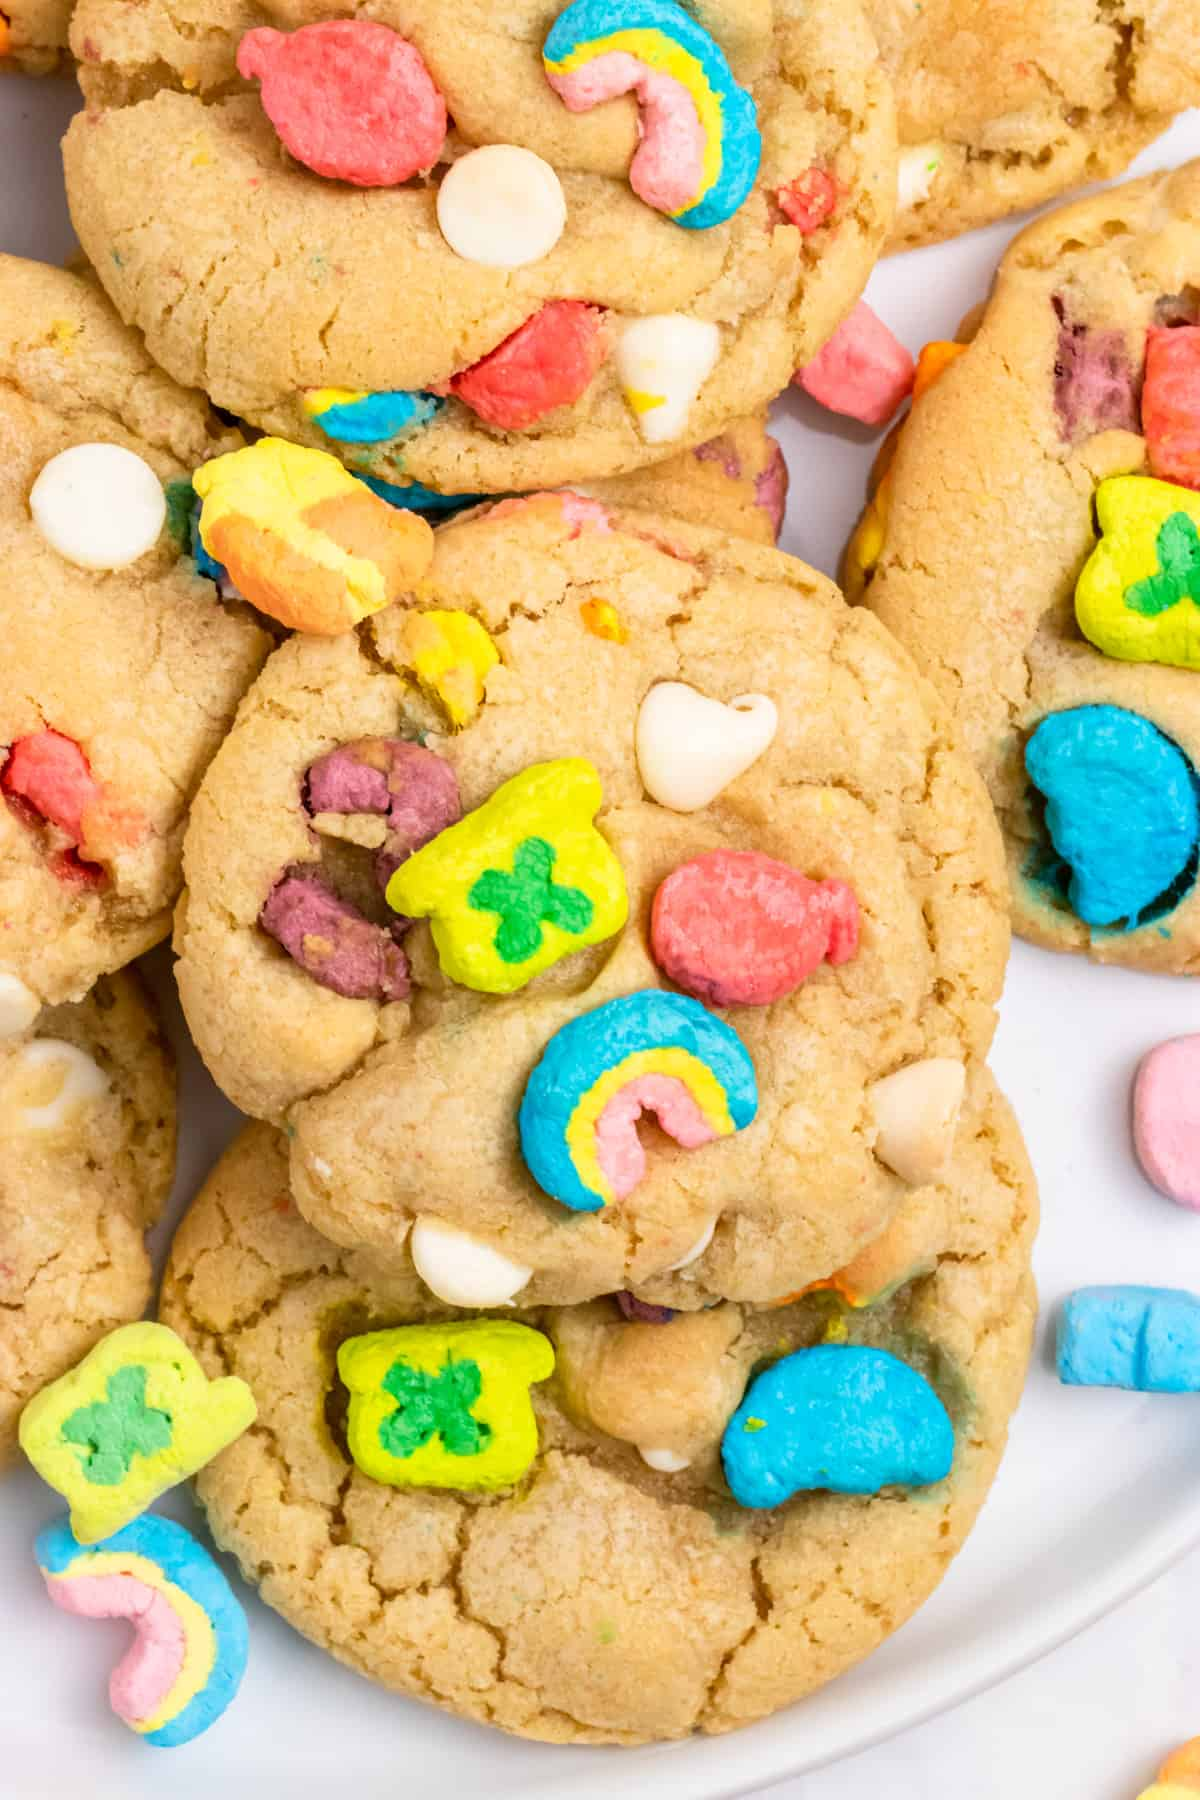 Cookies with lucky charm marshmallows and white chocolate chips on plate.